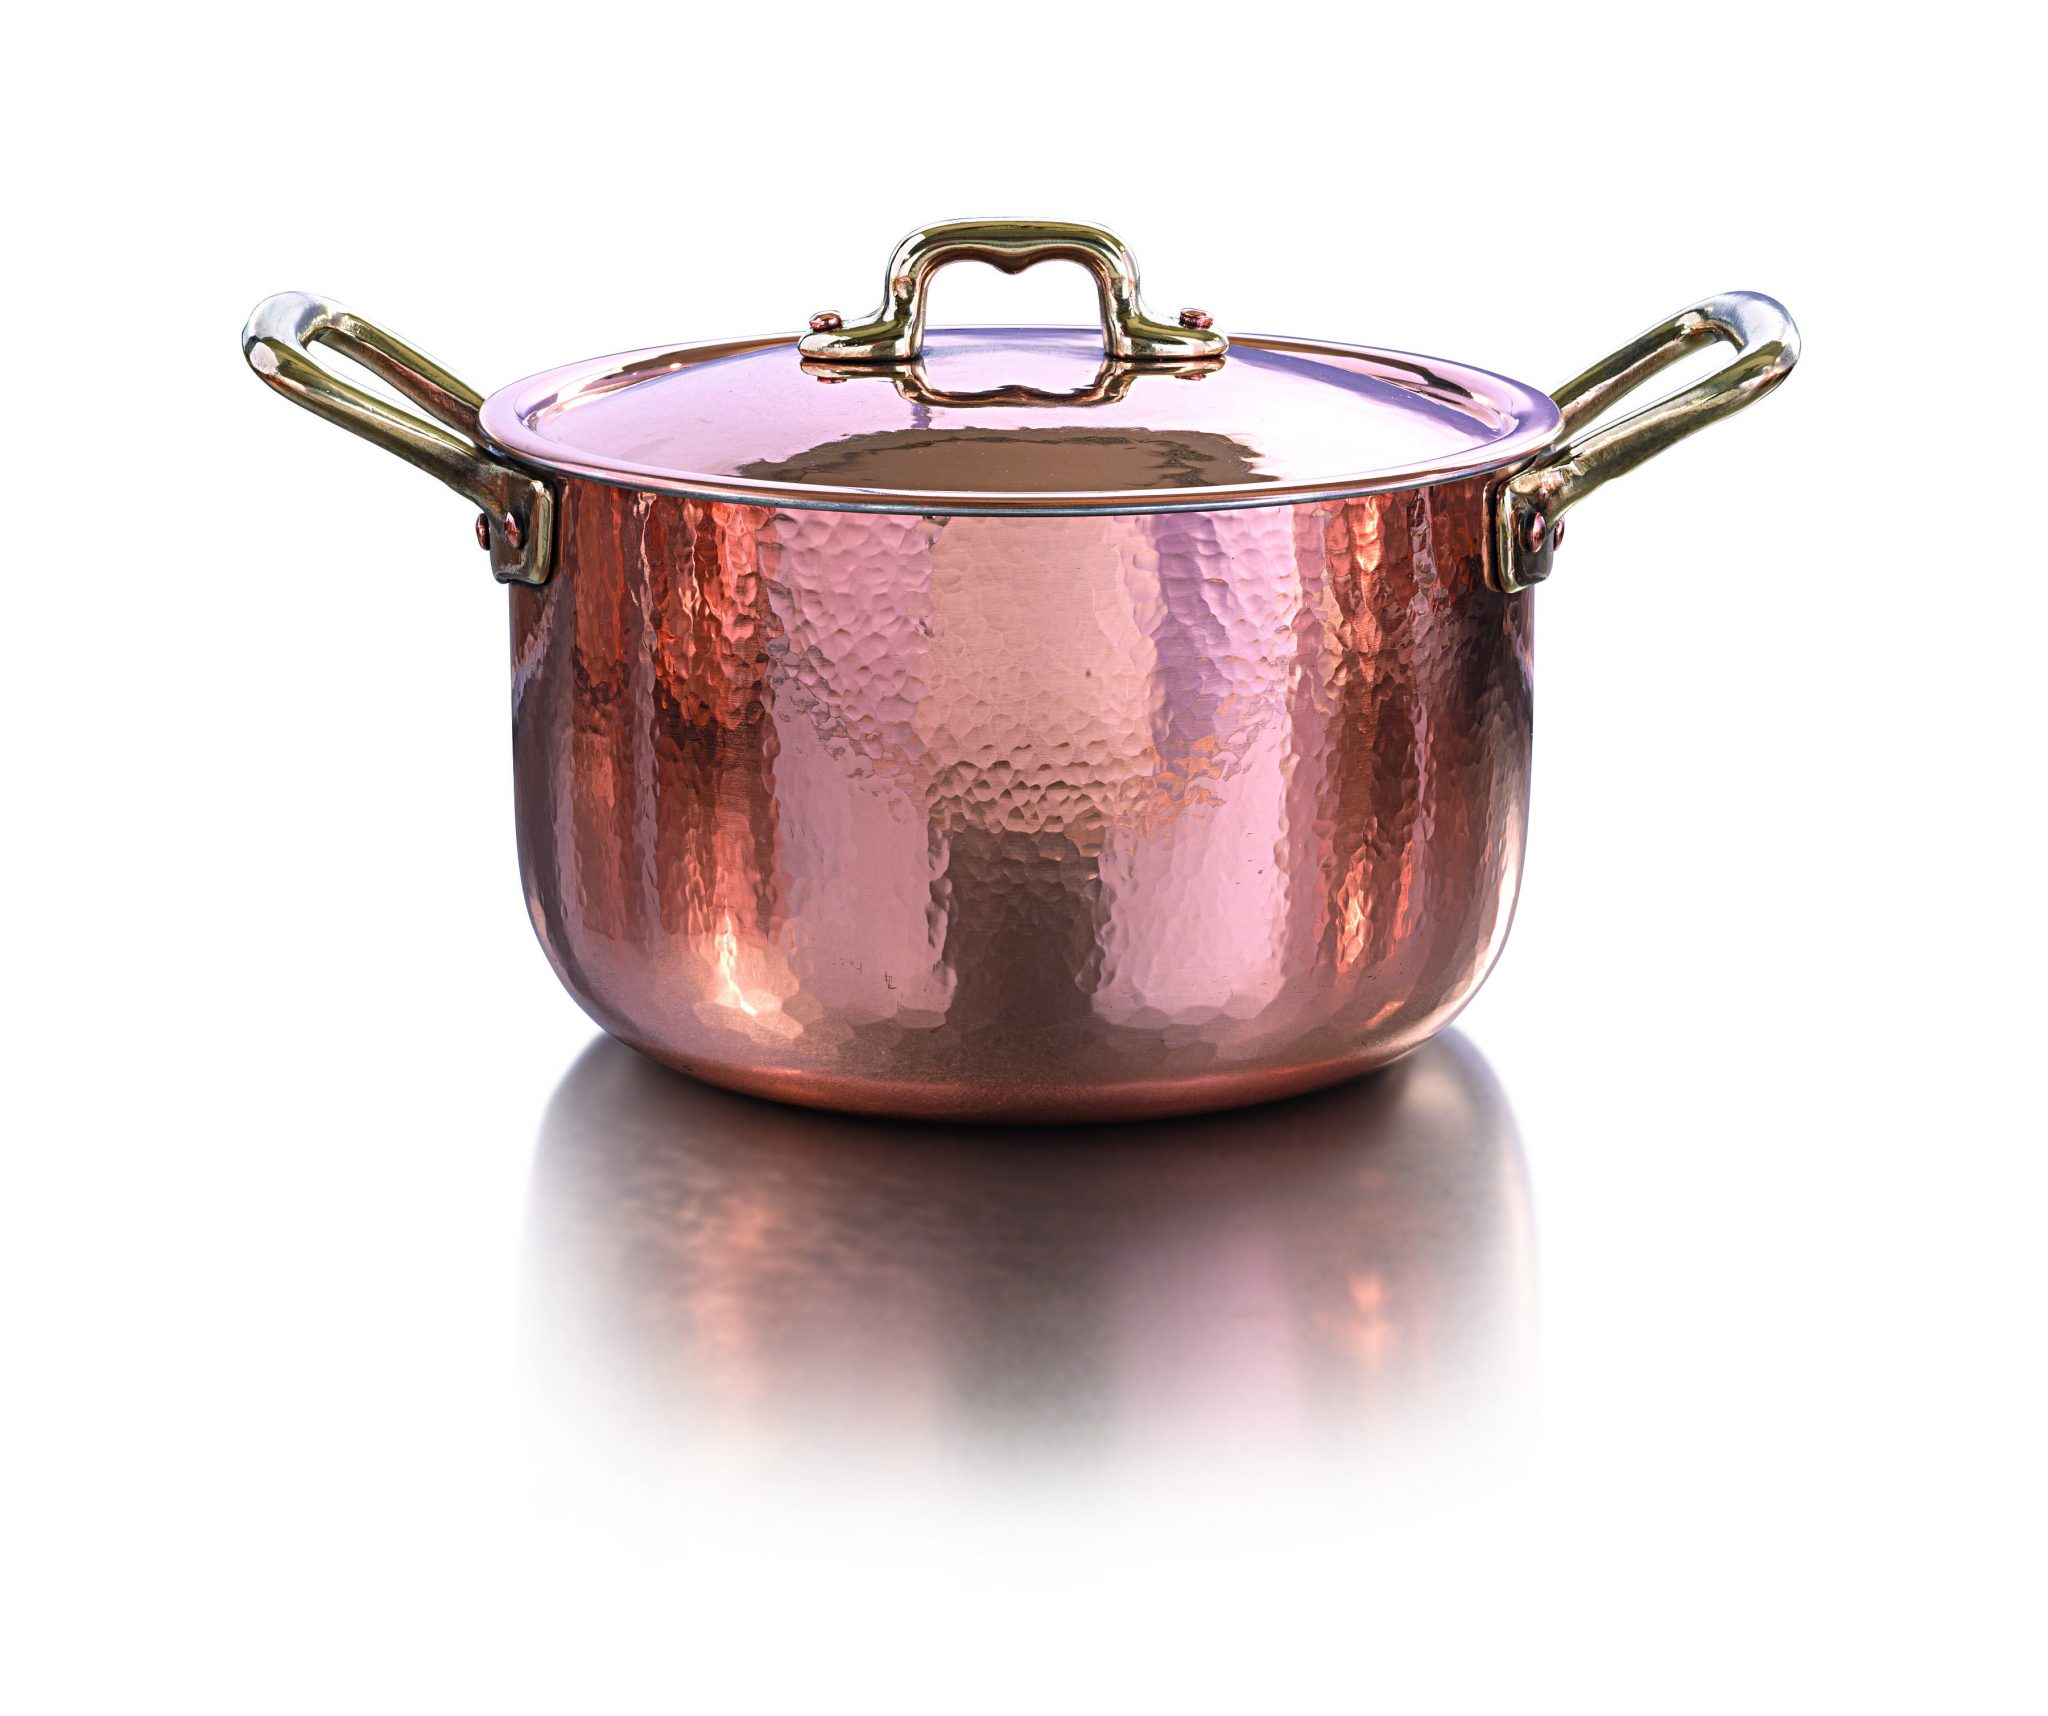 Officine Gullo copperware.